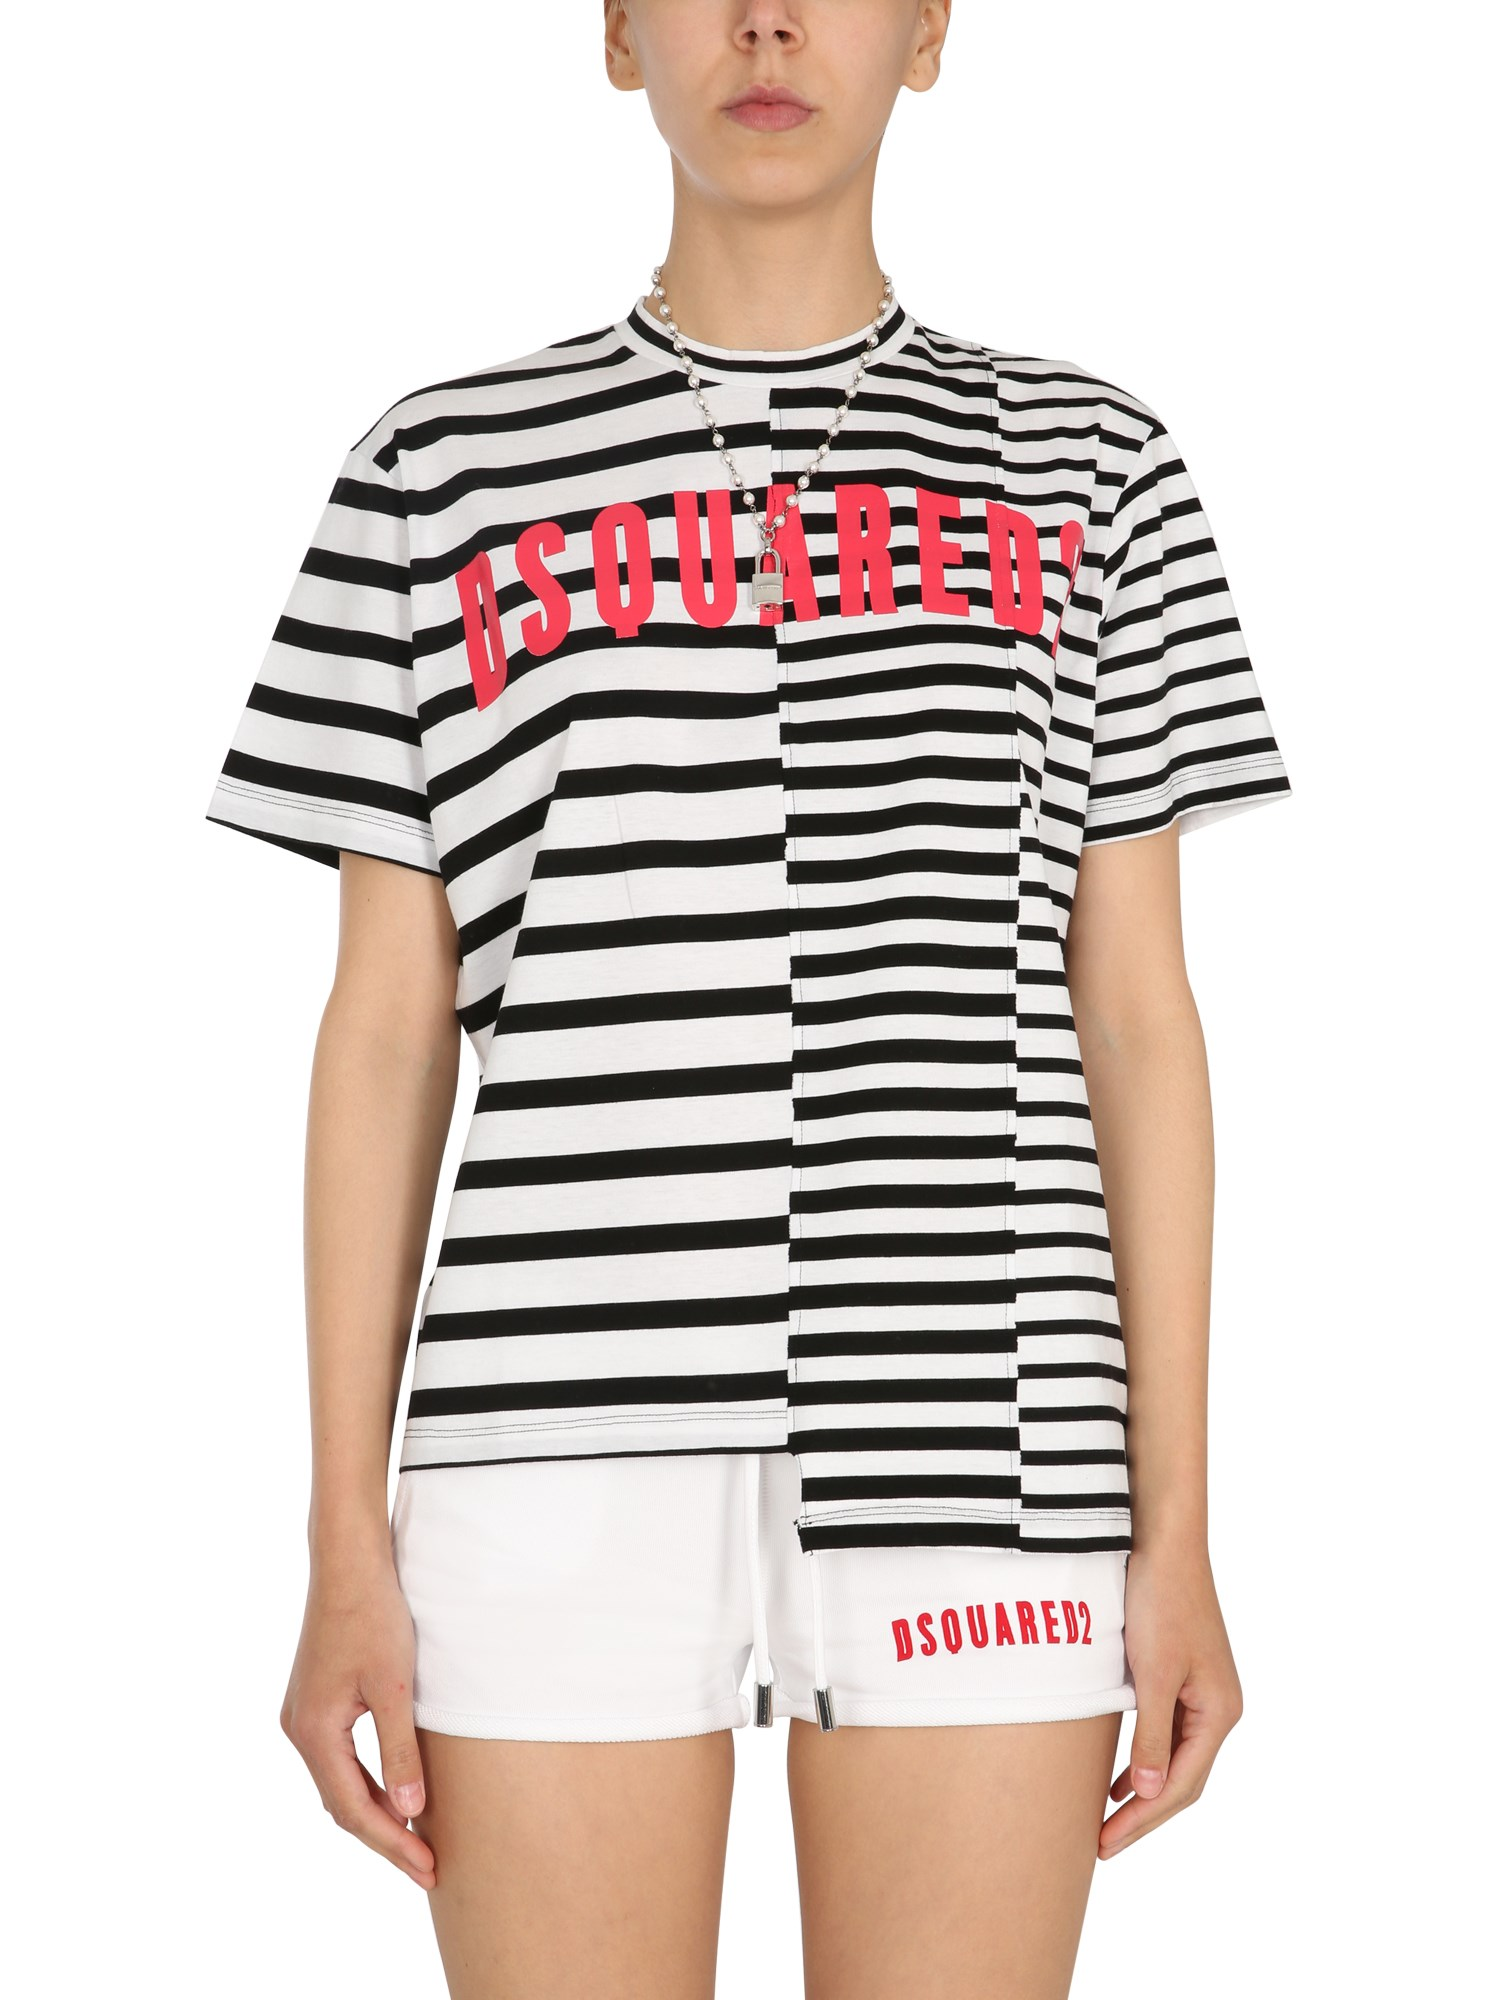 dsquared asymmetric t-shirt with stripe pattern